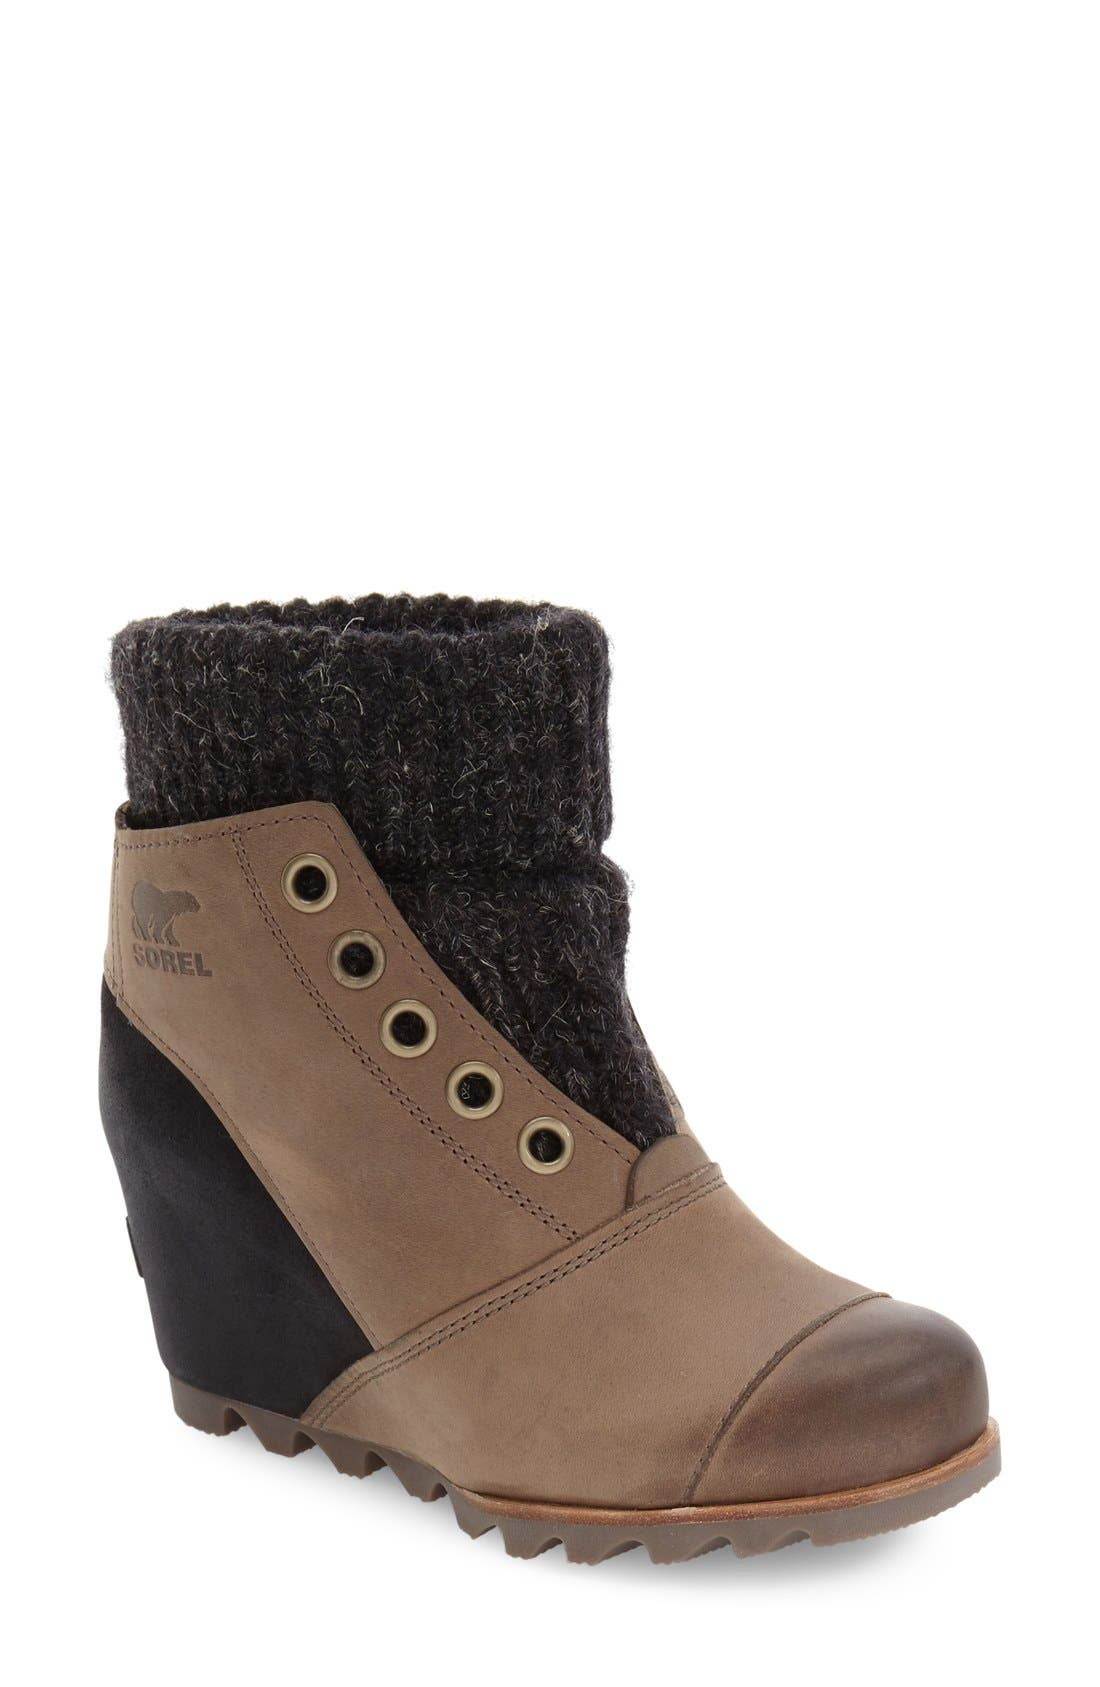 Alternate Image 1 Selected - SOREL Joanie Waterproof Wedge Bootie (Women)